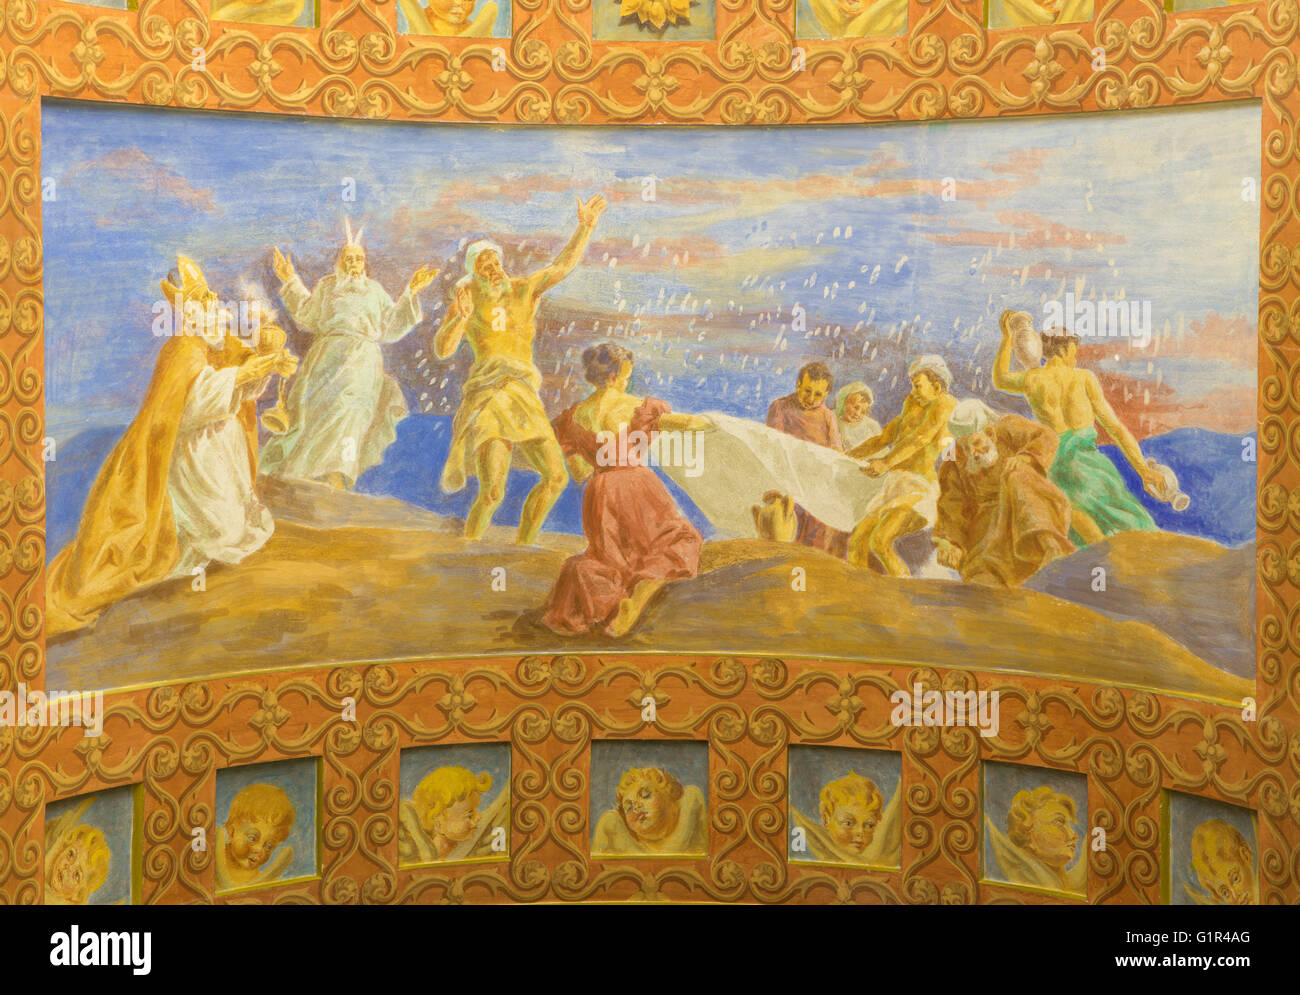 ROME, ITALY - MARCH 10, 2016: The fresco The Jews Gathering the Manna in the Desert (1957-1965) - Stock Image